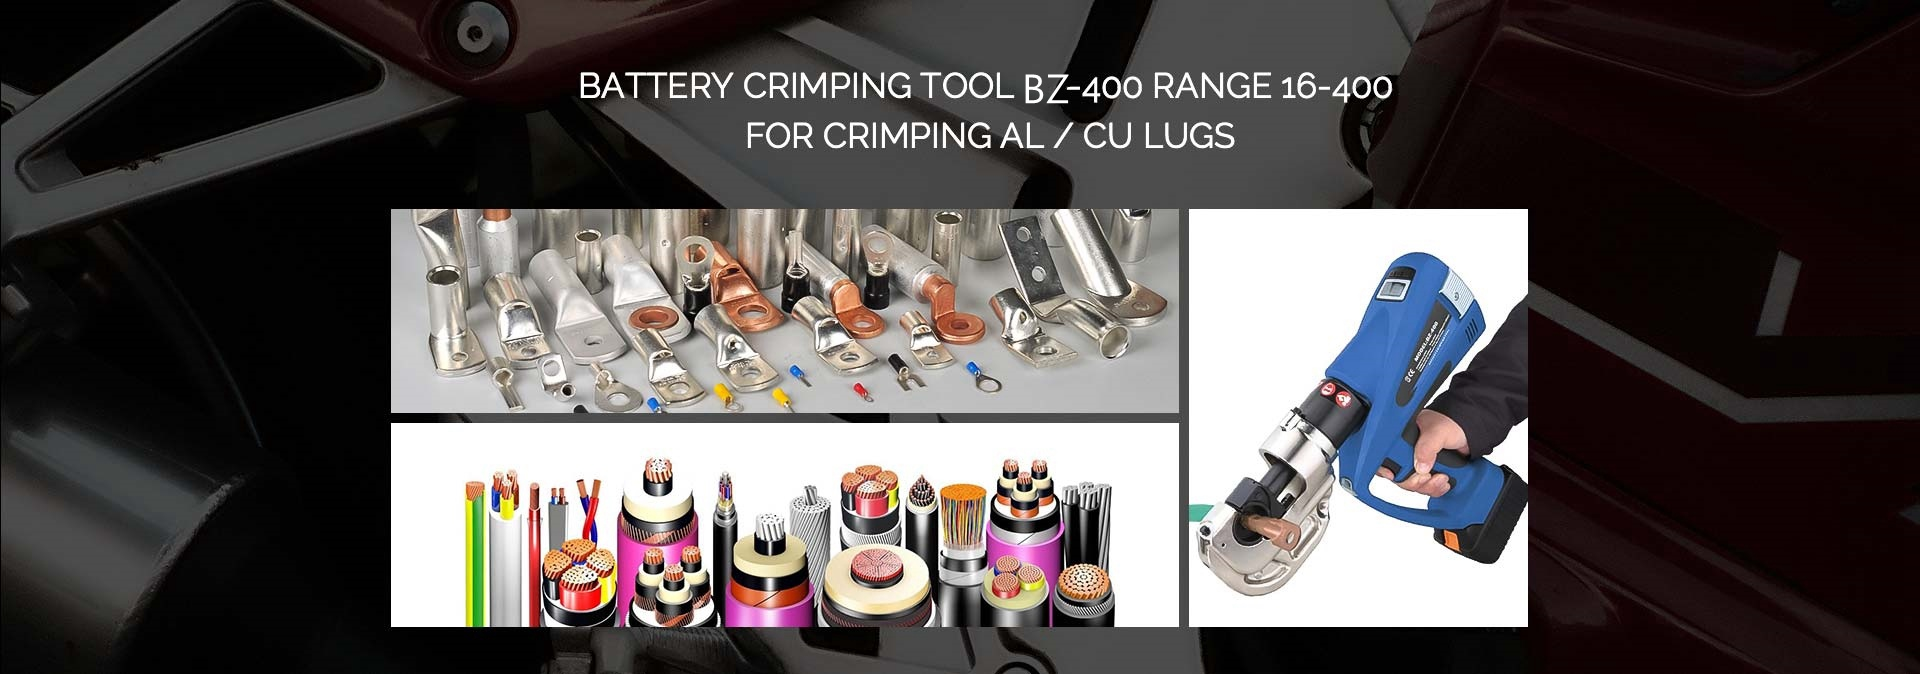 iGeelee BZ-400 Battery Powered Wire Compression Tools for CuAl Terminals range 16-400